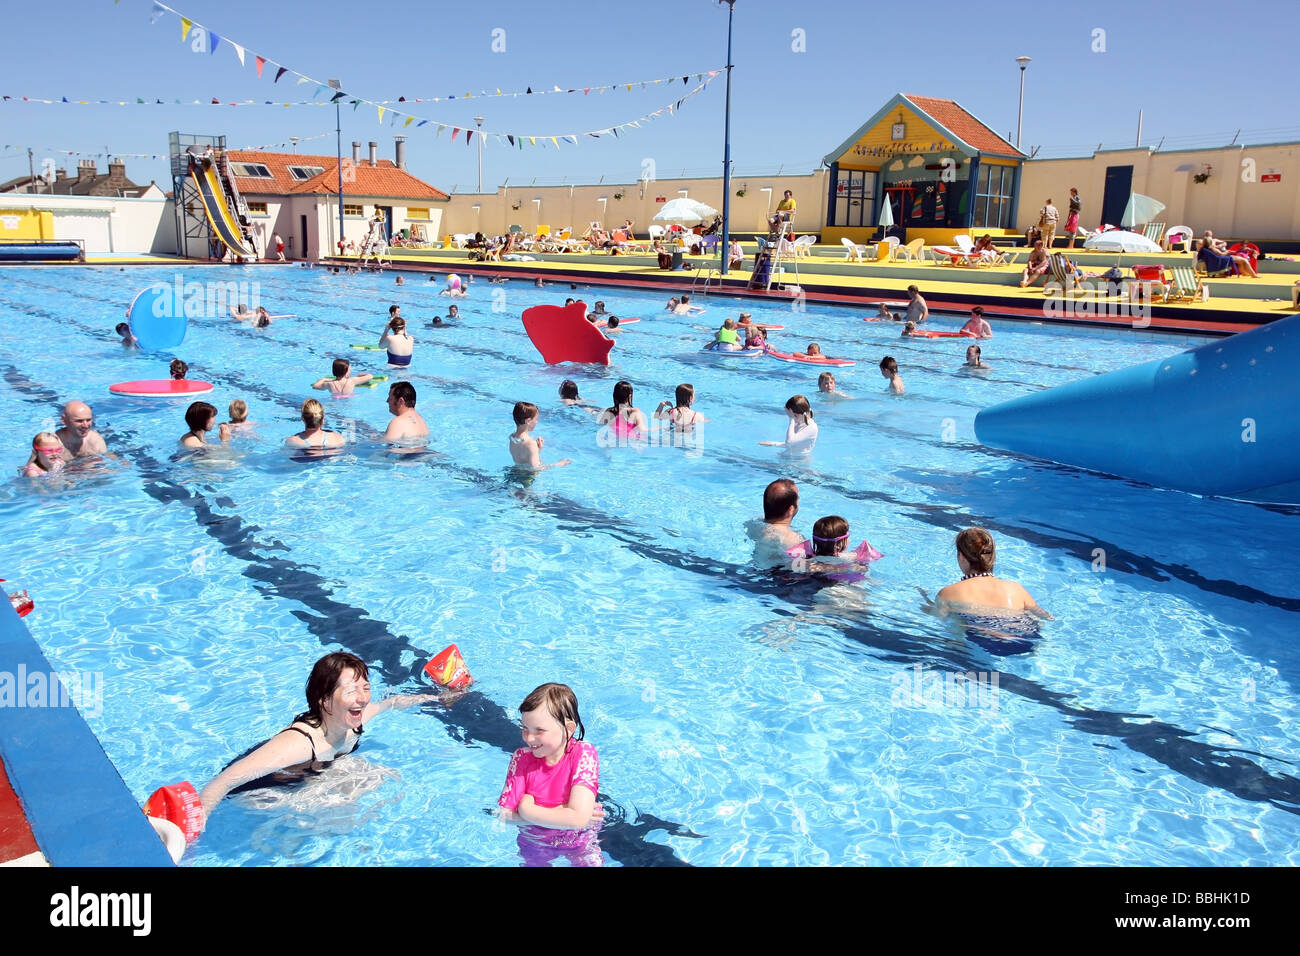 The Historic Open Air Swimming Pool At Stonehaven Aberdeenshire Stock Photo Royalty Free Image